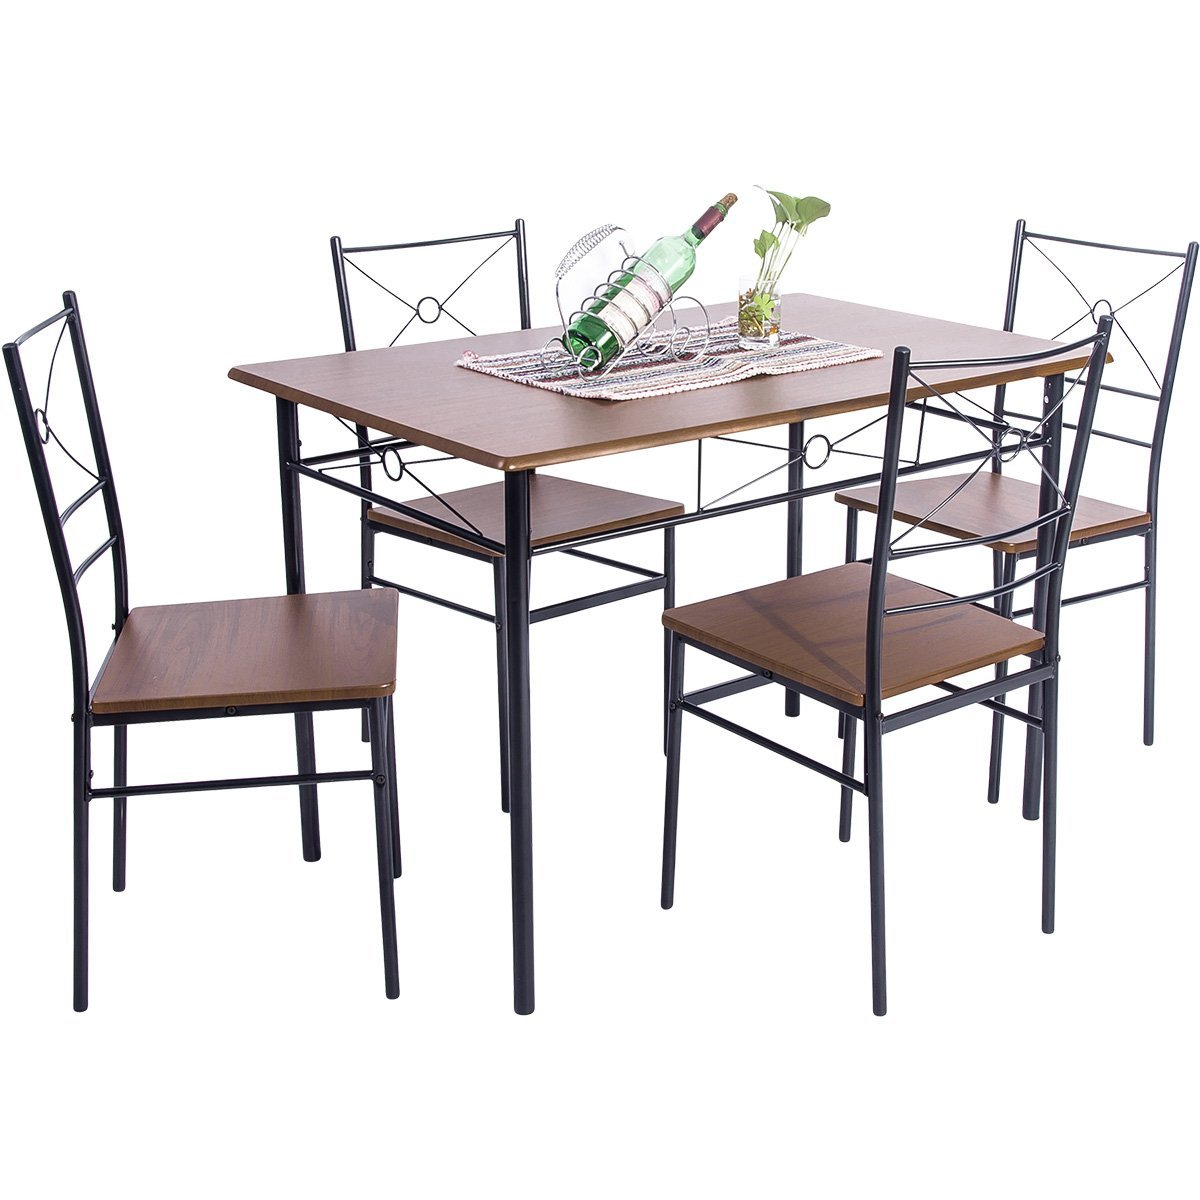 Harper&Bright Designs 5 Piece Wood and Metal Dining Set, Multiple Colors